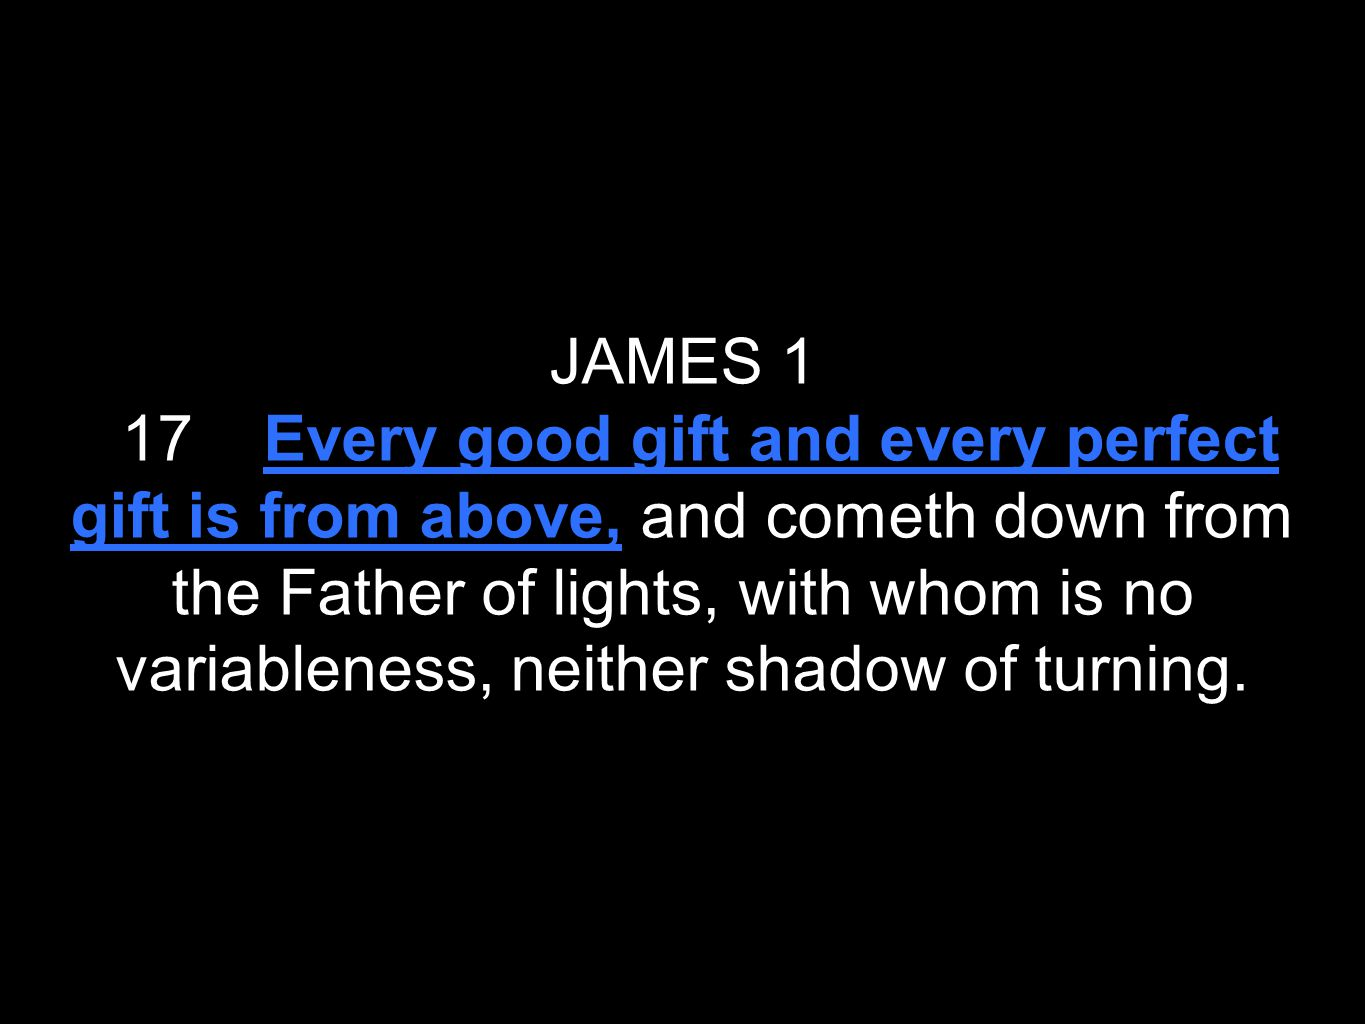 JAMES 1 17 Every good gift and every perfect gift is from above, and cometh down from the Father of lights, with whom is no variableness, neither shad